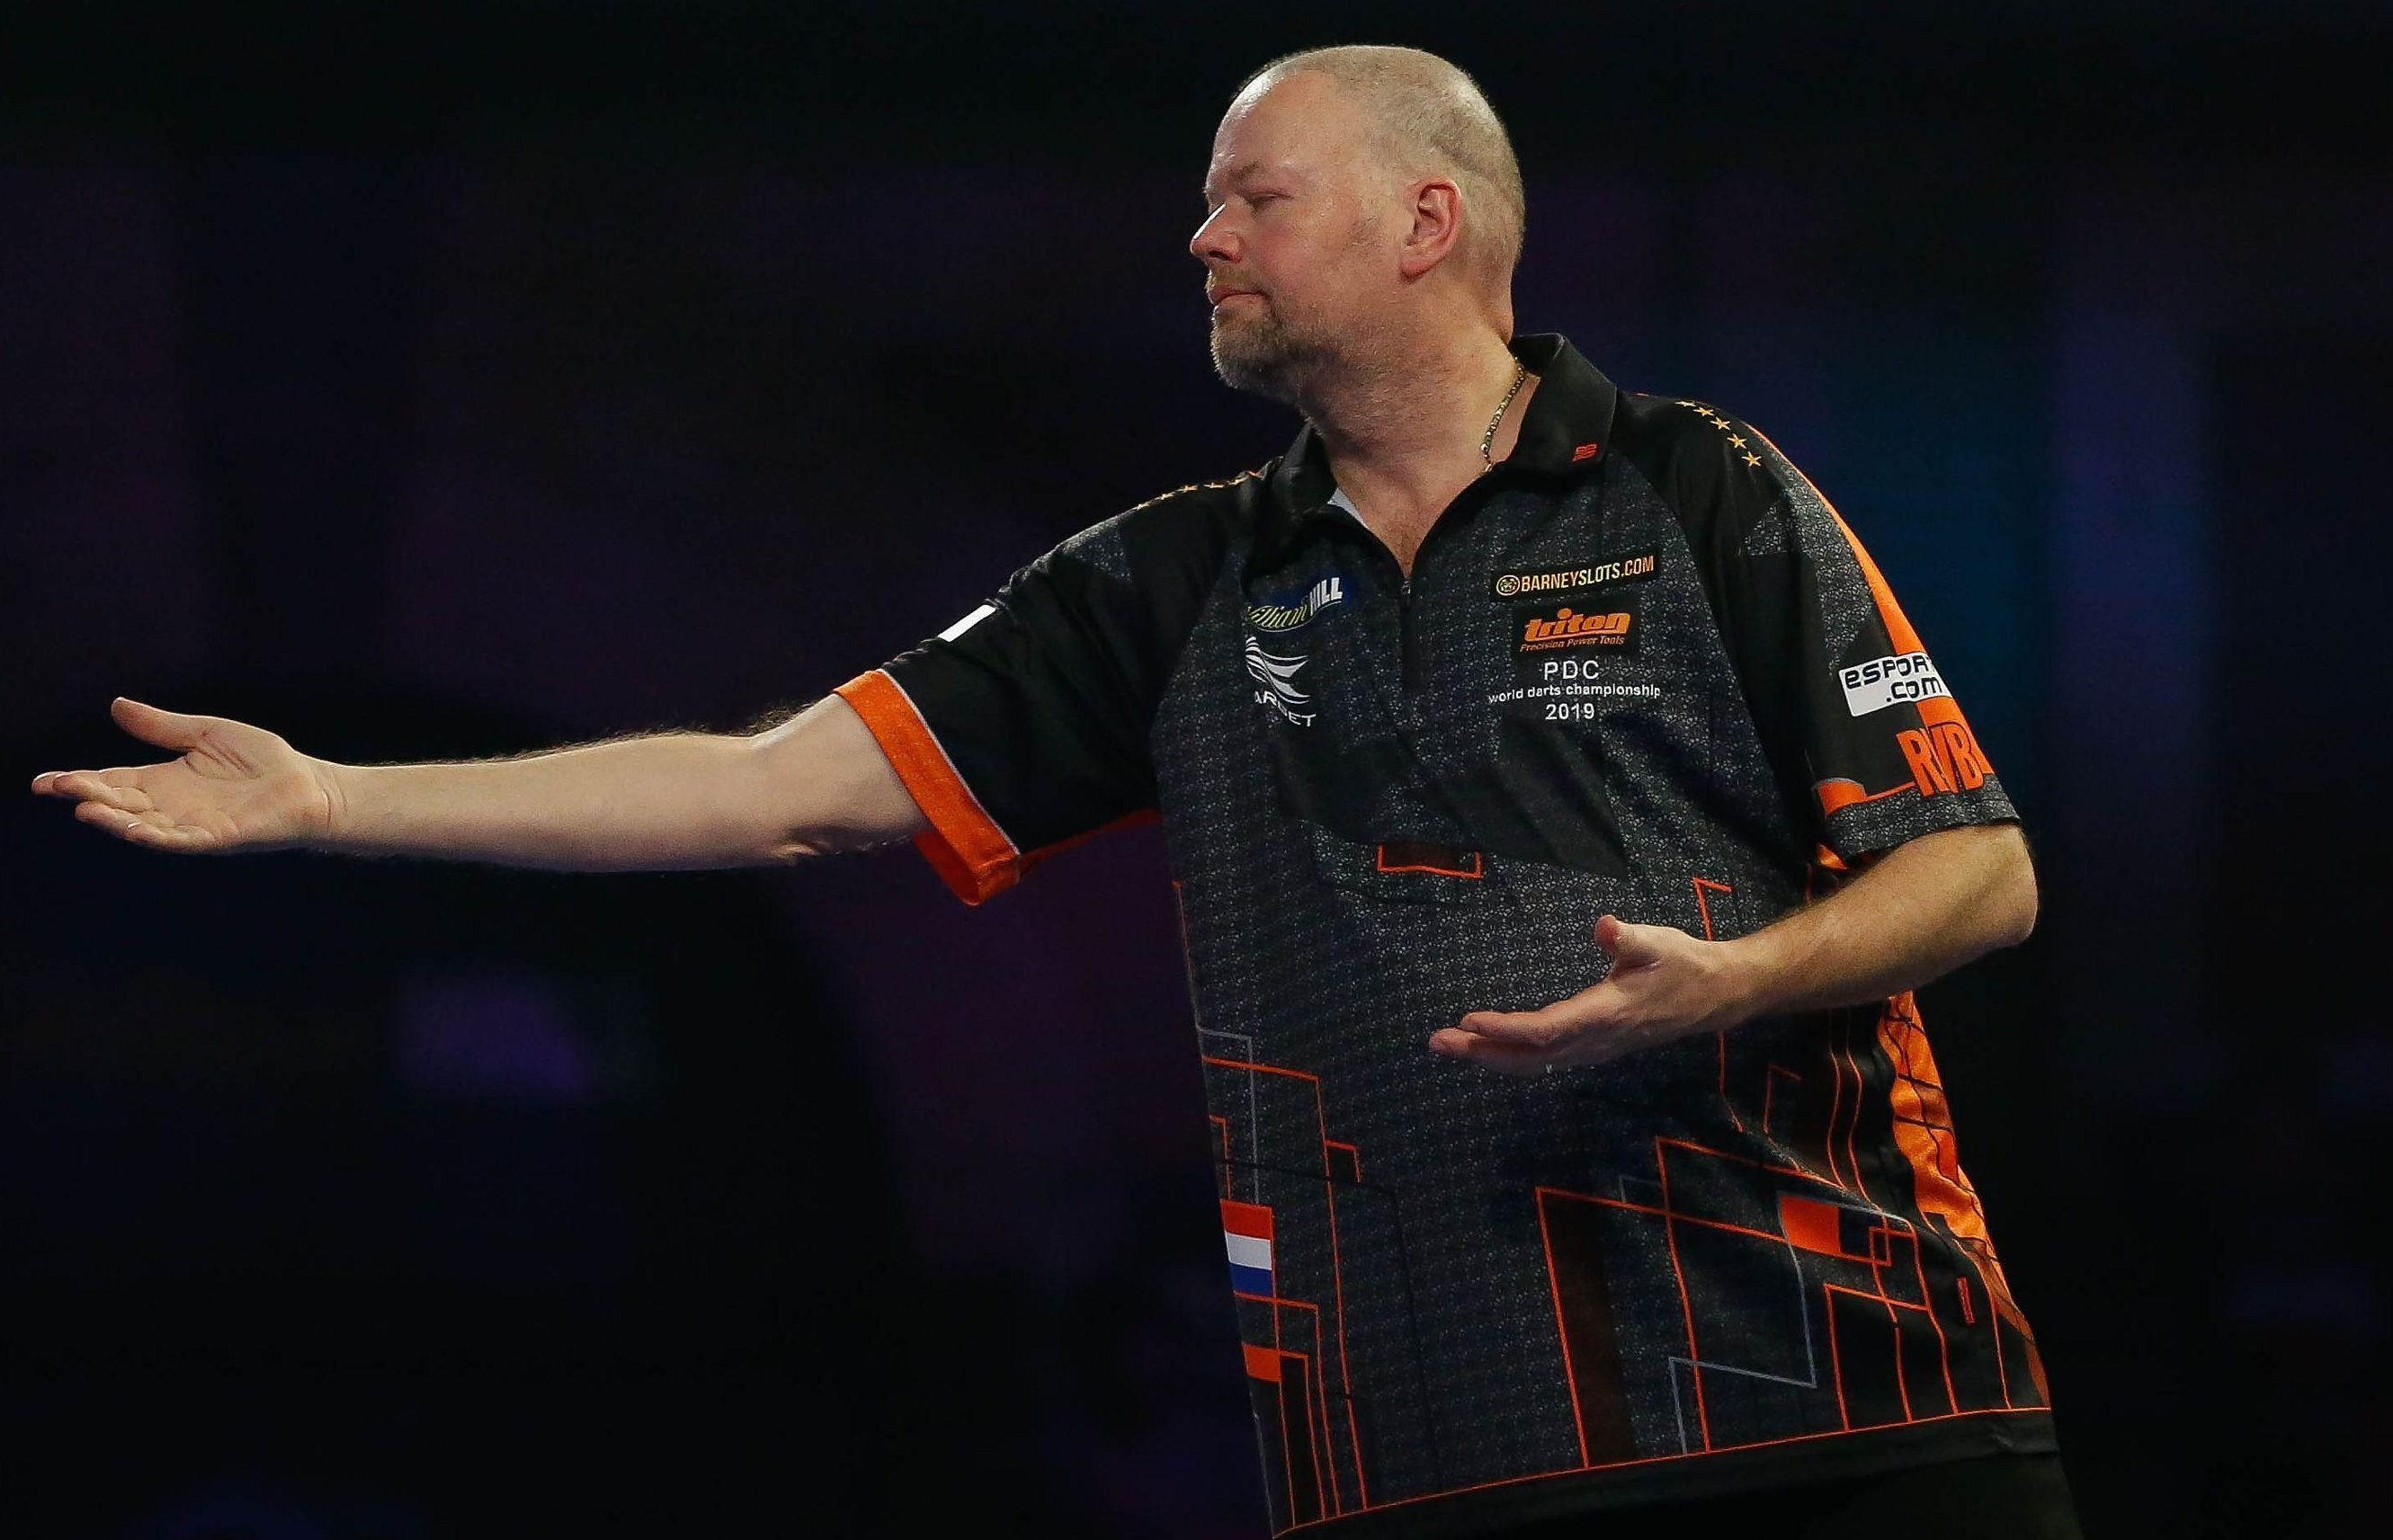 Raymond van Barneveld was left to lament a poor performance and an early exit